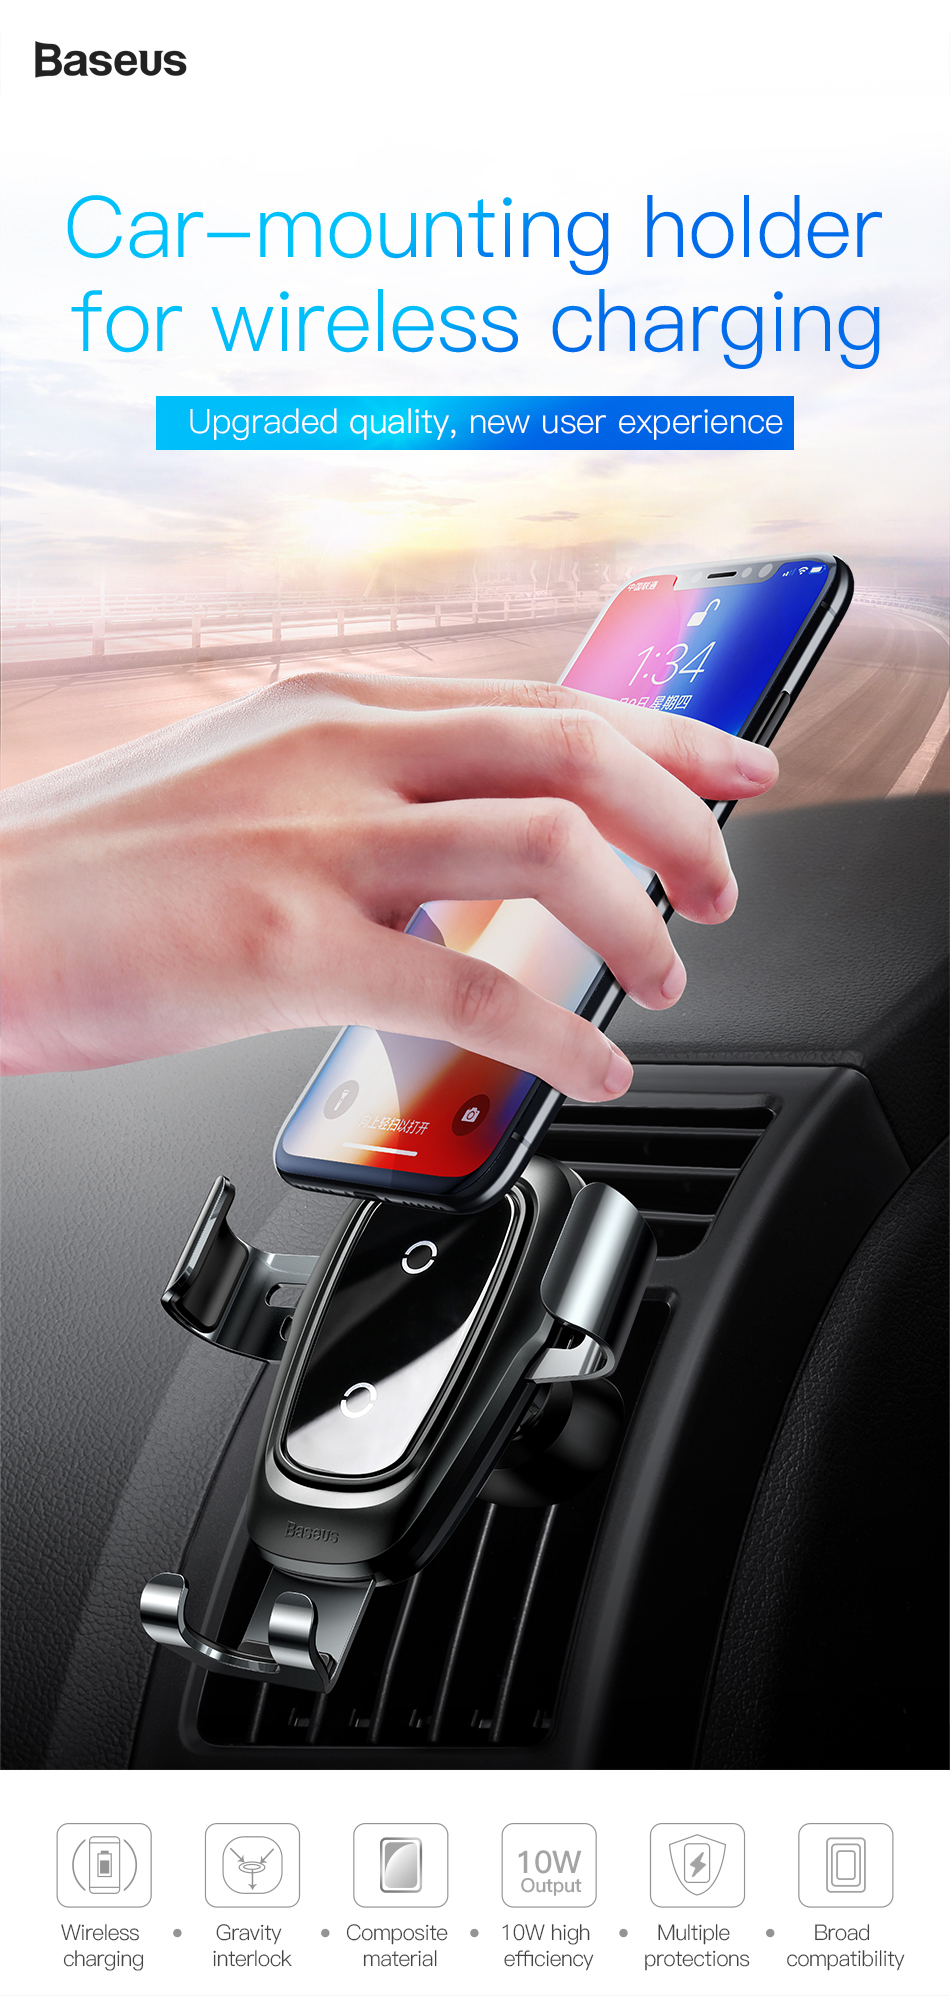 Baseus Qi Wireless Car Charger For iPhone Xs Max X 10w Fast Car Wireless Charging Holder For Xiaomi Mi 9 Mix 3 2s Samsung S10 S9 1